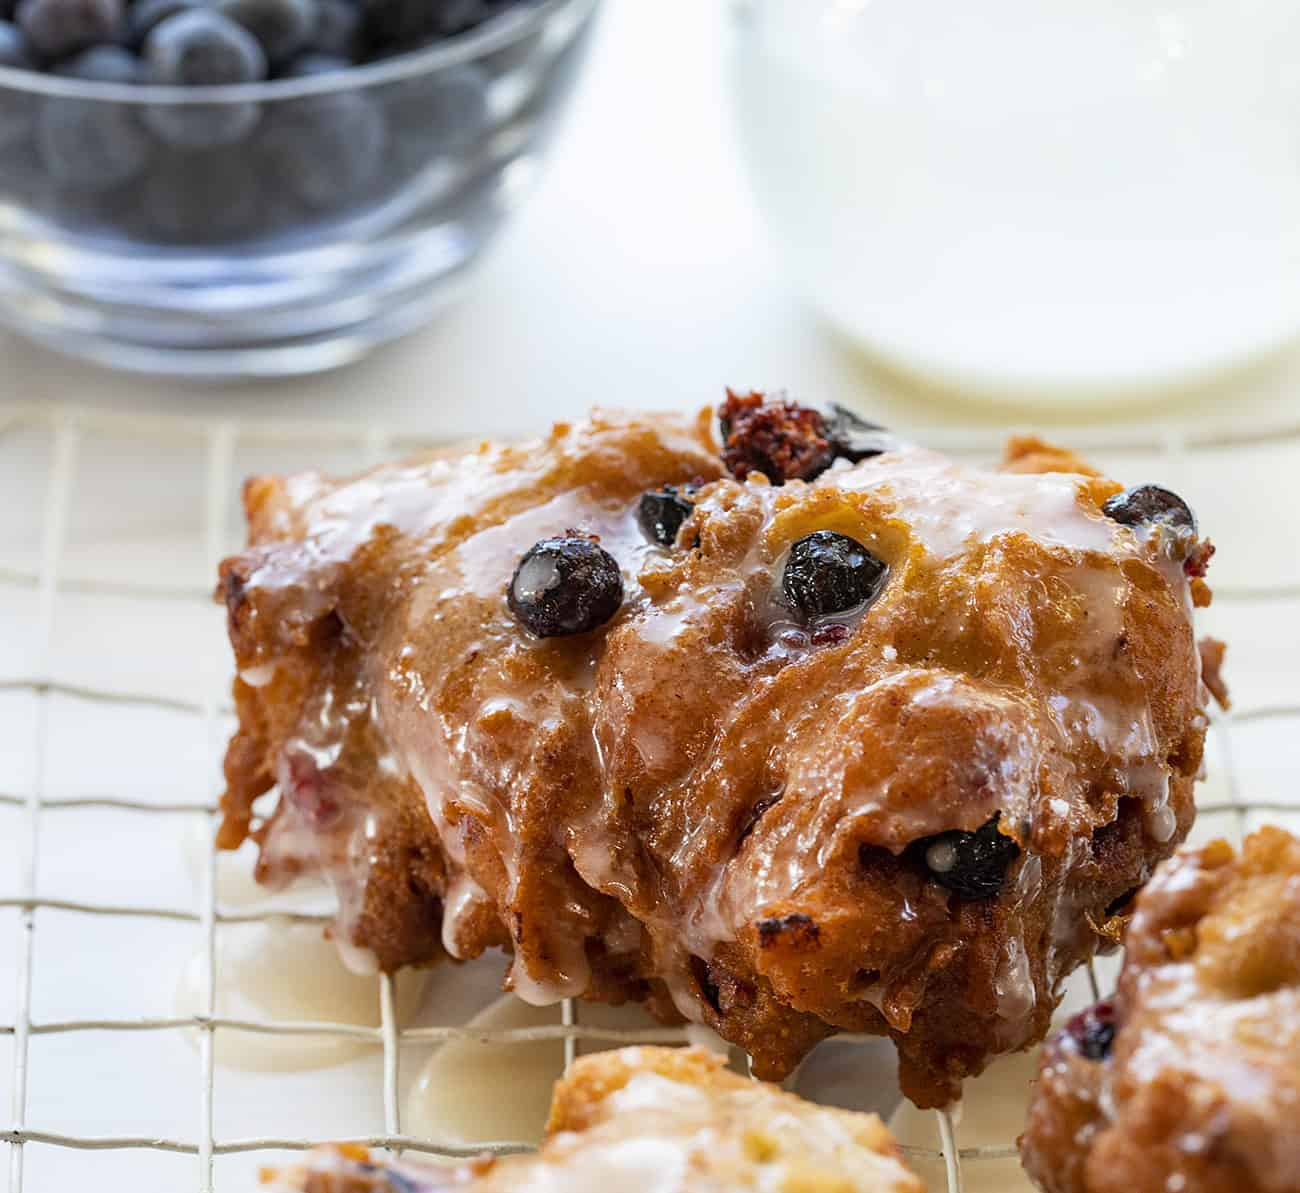 One Fresh Blueberry Fritter on Rack with Blueberries and Glaze